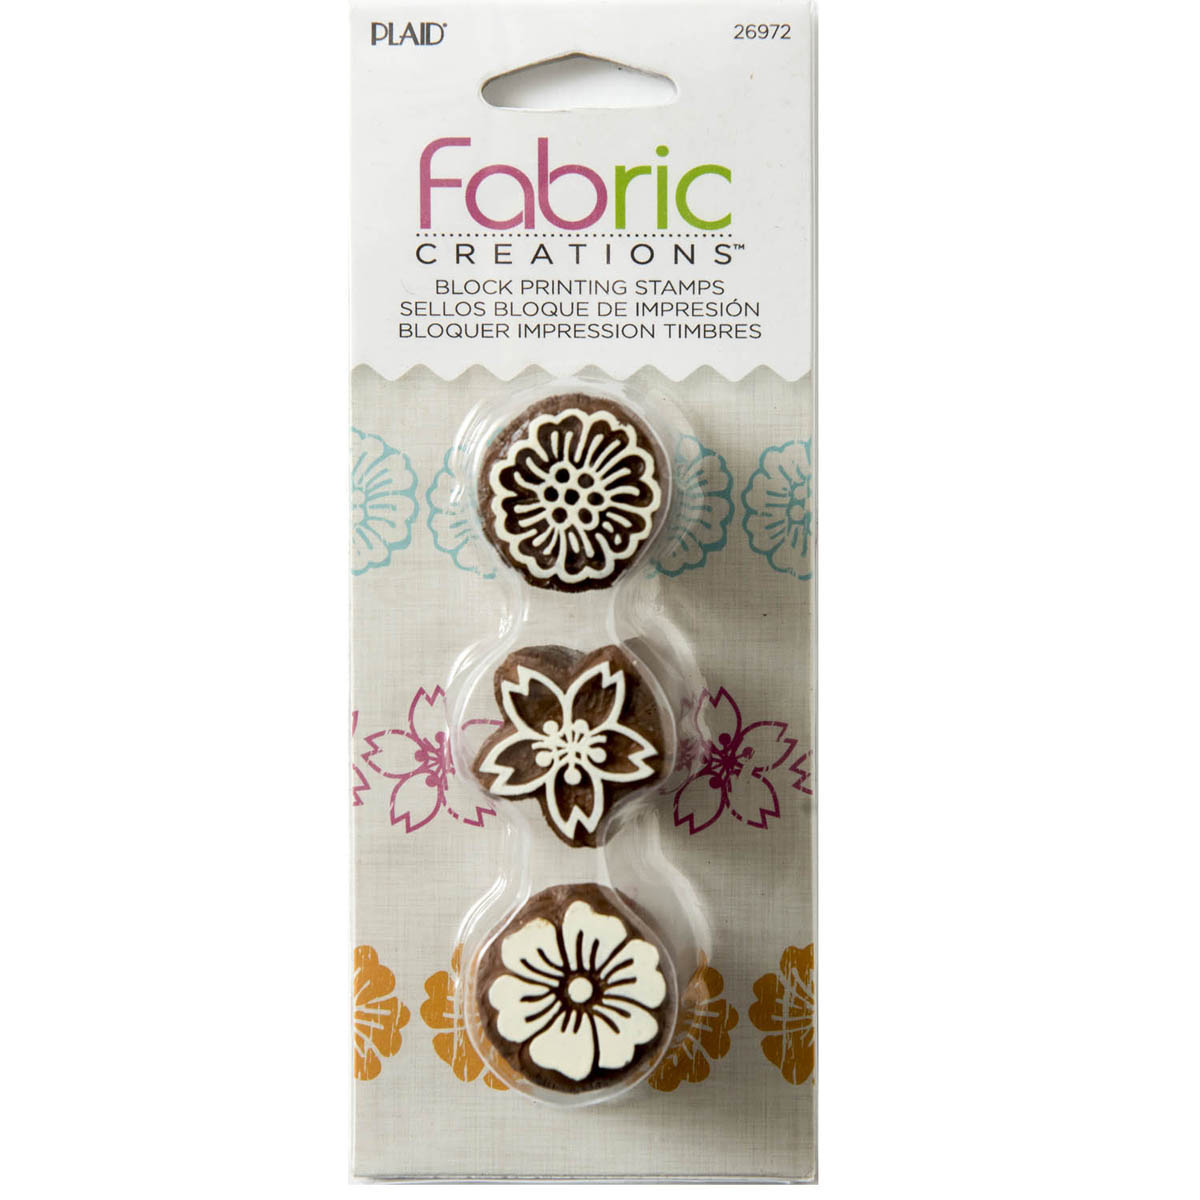 Fabric Creations™ Block Printing Stamps - Mini Set - Floral 1